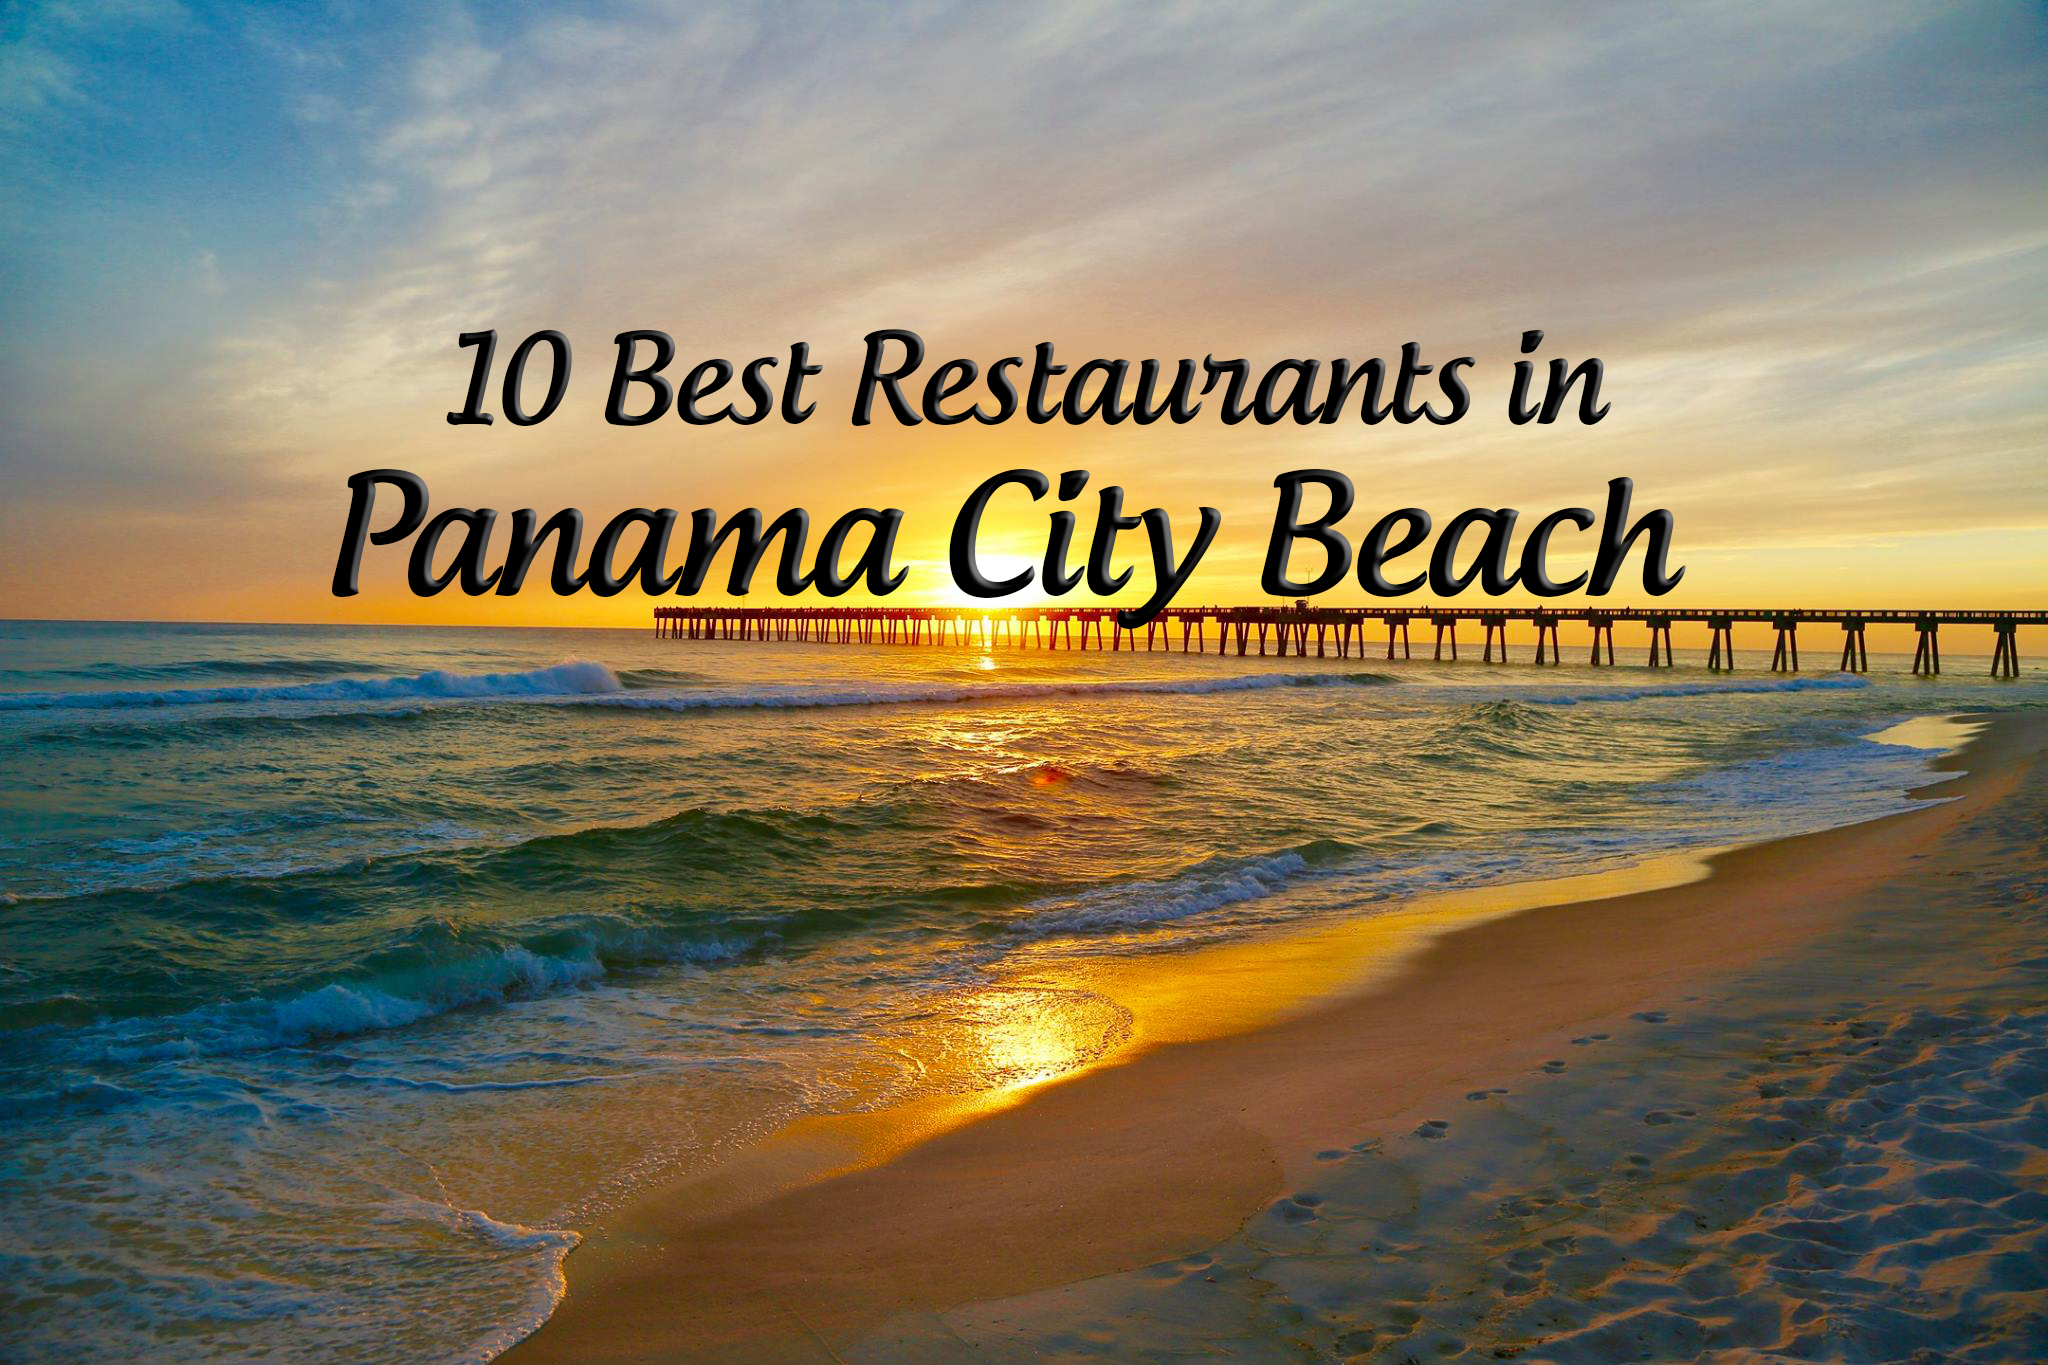 A List Of The 10 Best Restaurants In Panama City Beach Florida With Their Website Links And Address As Voted By 17 000 Members I Love